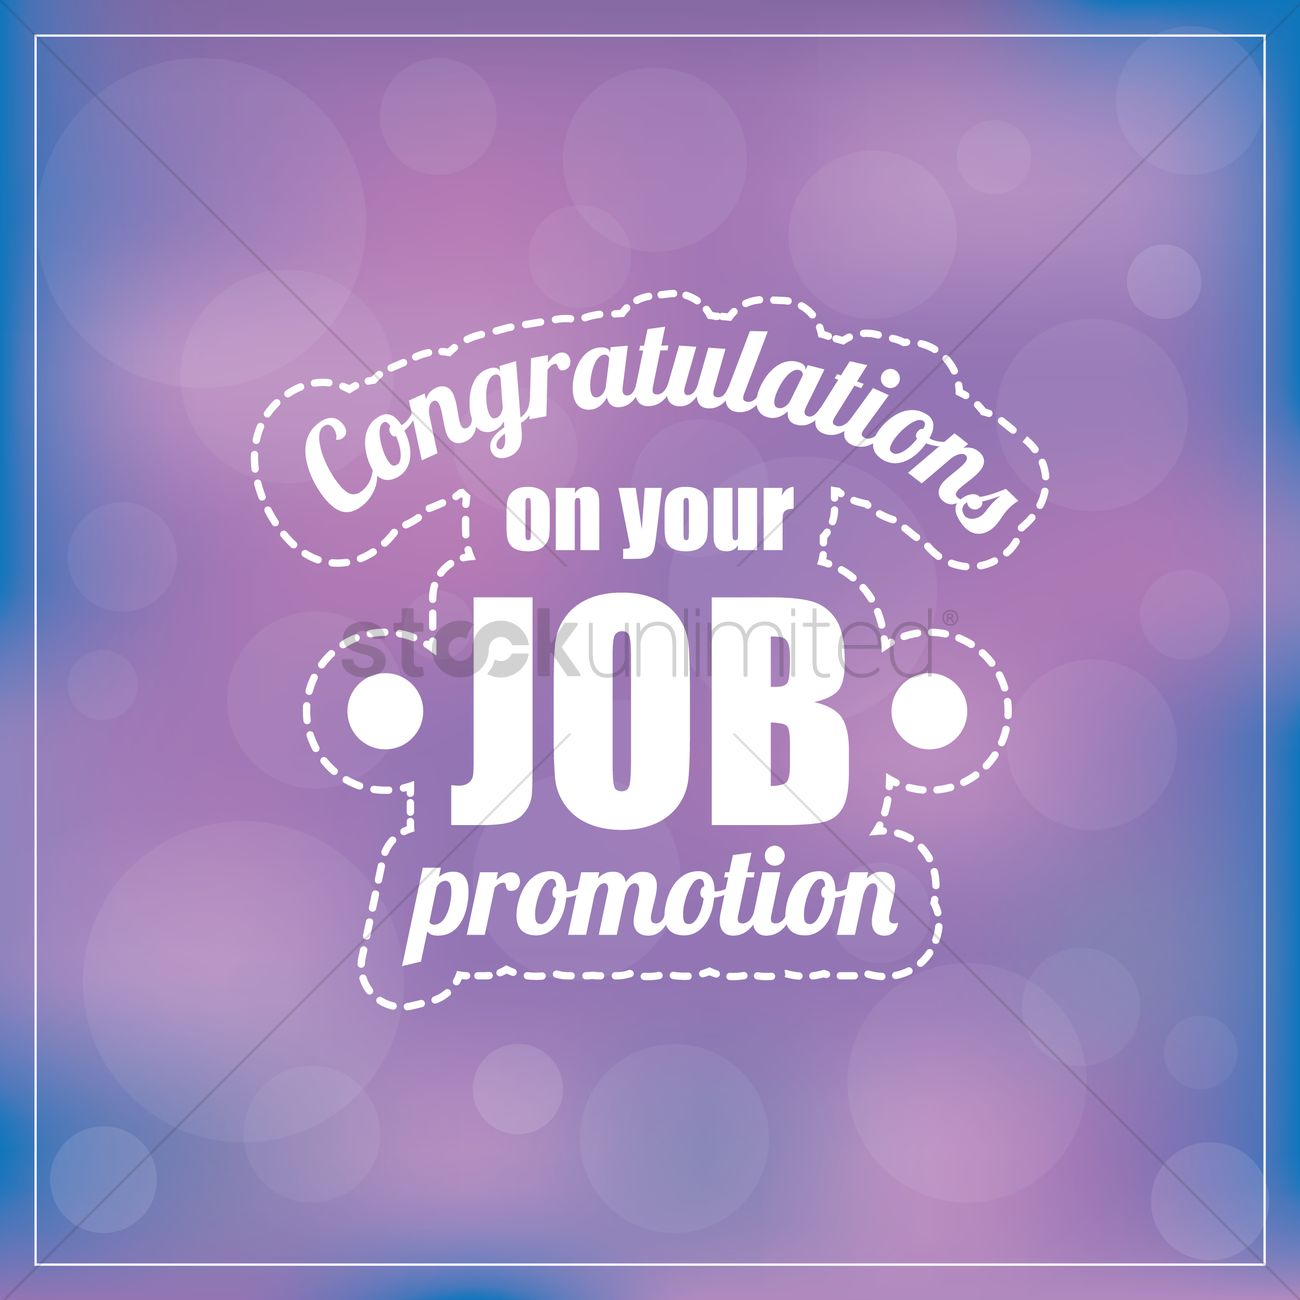 Congratulations on your job promotion Vector Image - 1828635 ...